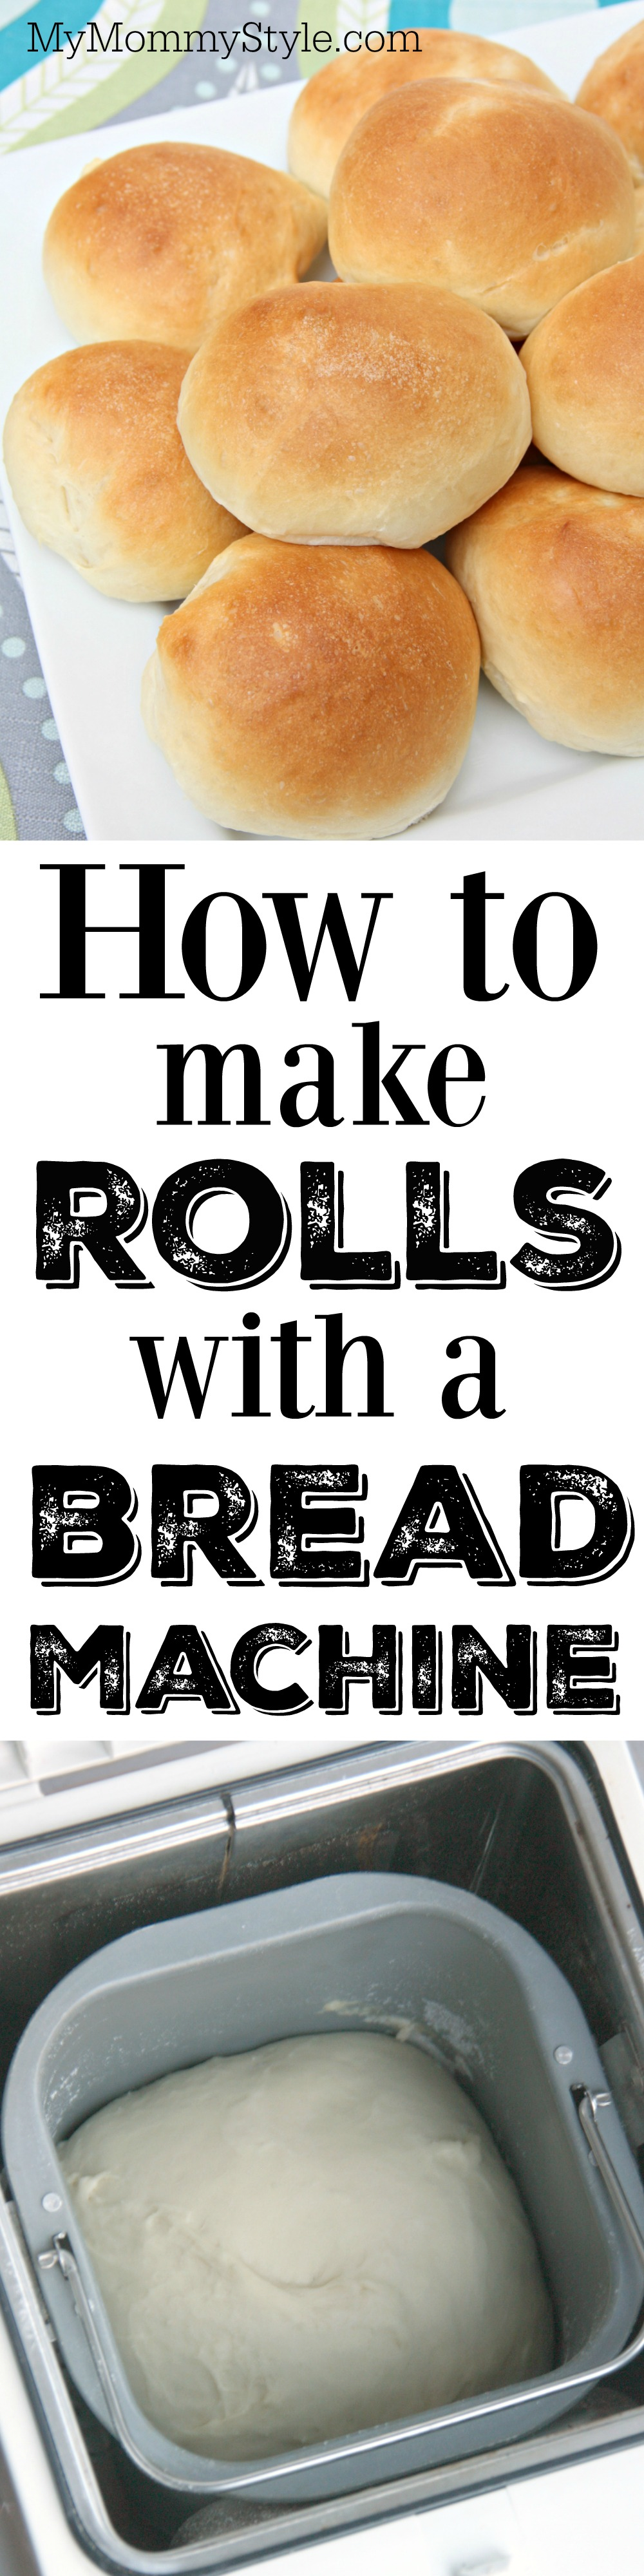 How to make rolls with a bread machine